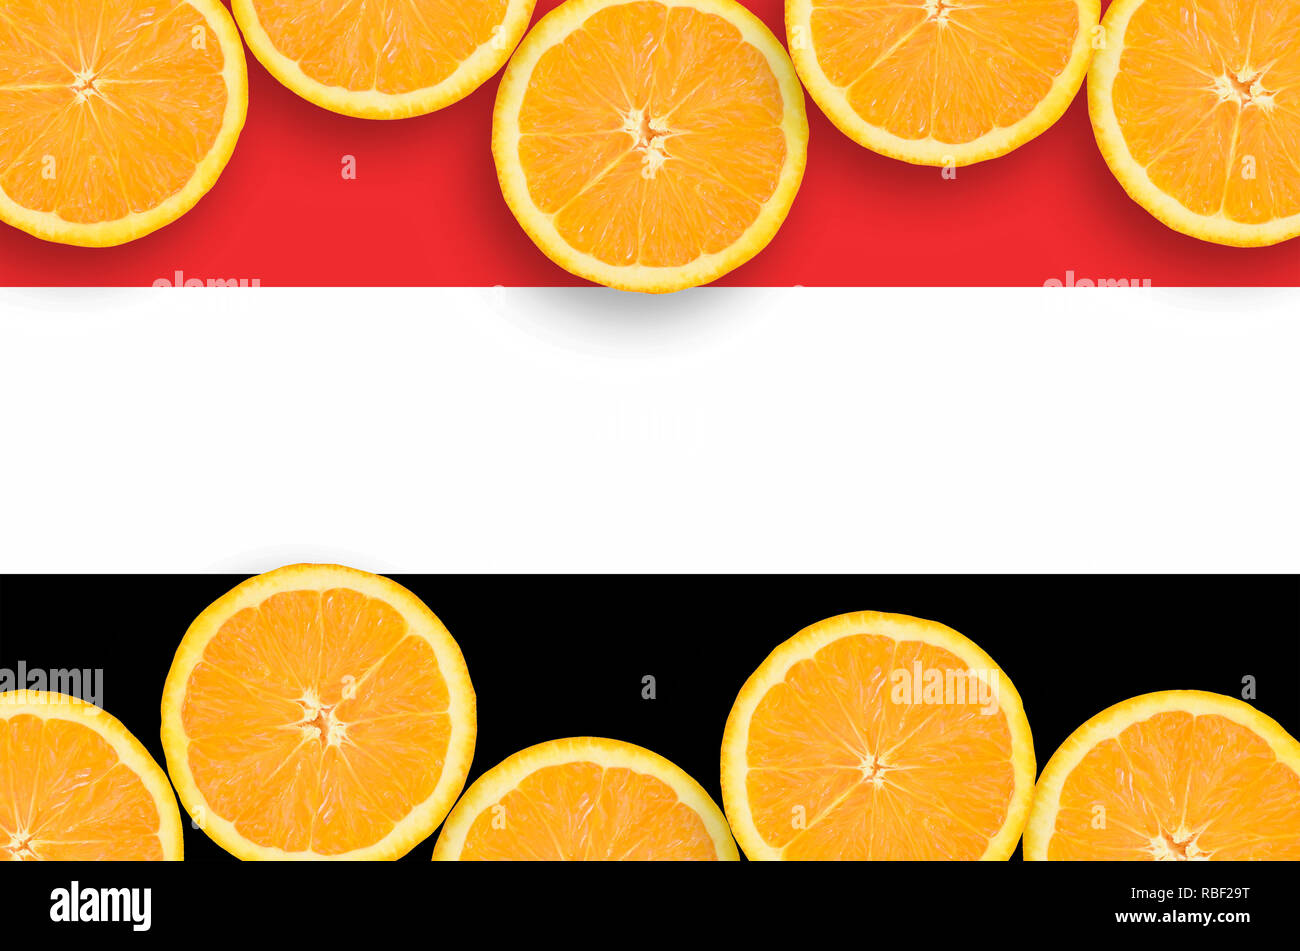 Yemen flag  in horizontal frame of orange citrus fruit slices. Concept of growing as well as import and export of citrus fruits - Stock Image